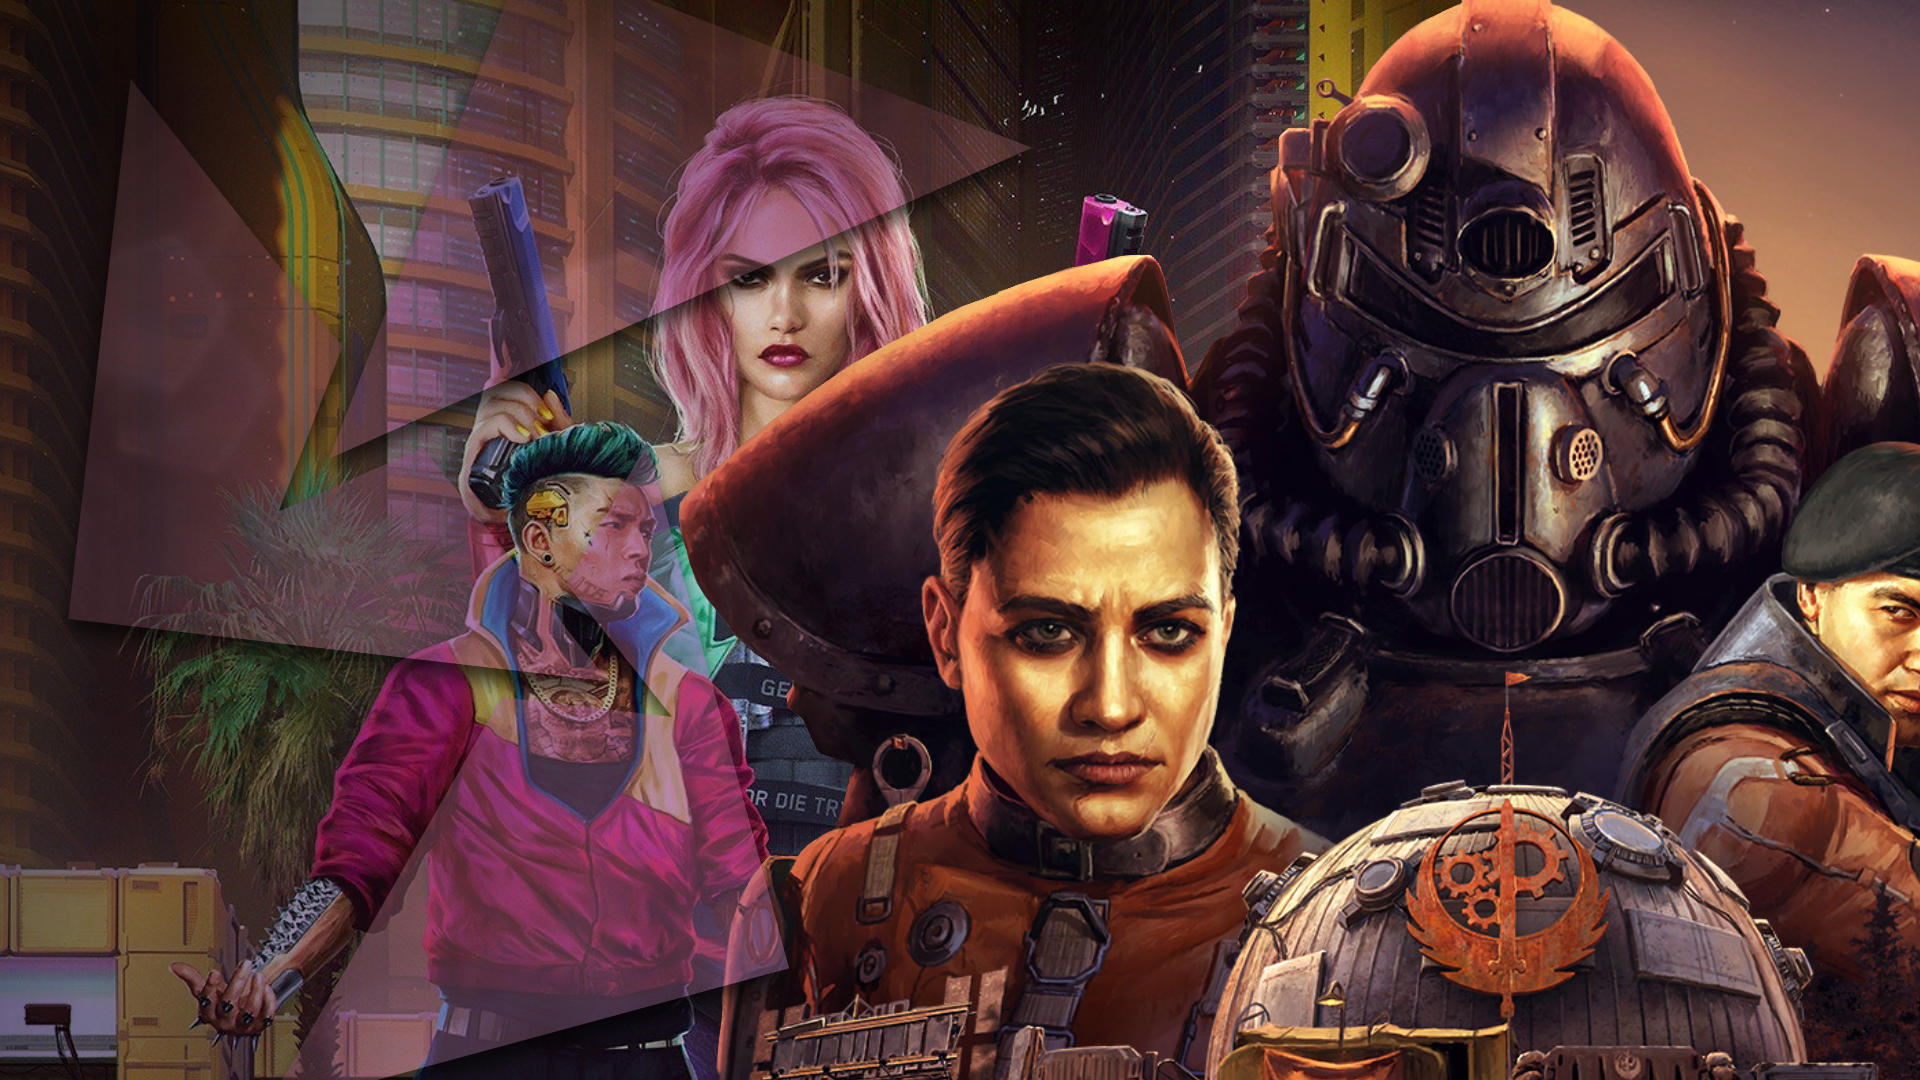 The banner shows game art of a female with pink hair and a young man with a green pompadour and pink jacket from Cyberpunk 2077, and character art from Fallout 76 featuring a mecha suit and a young, dark-featured man looking intense.